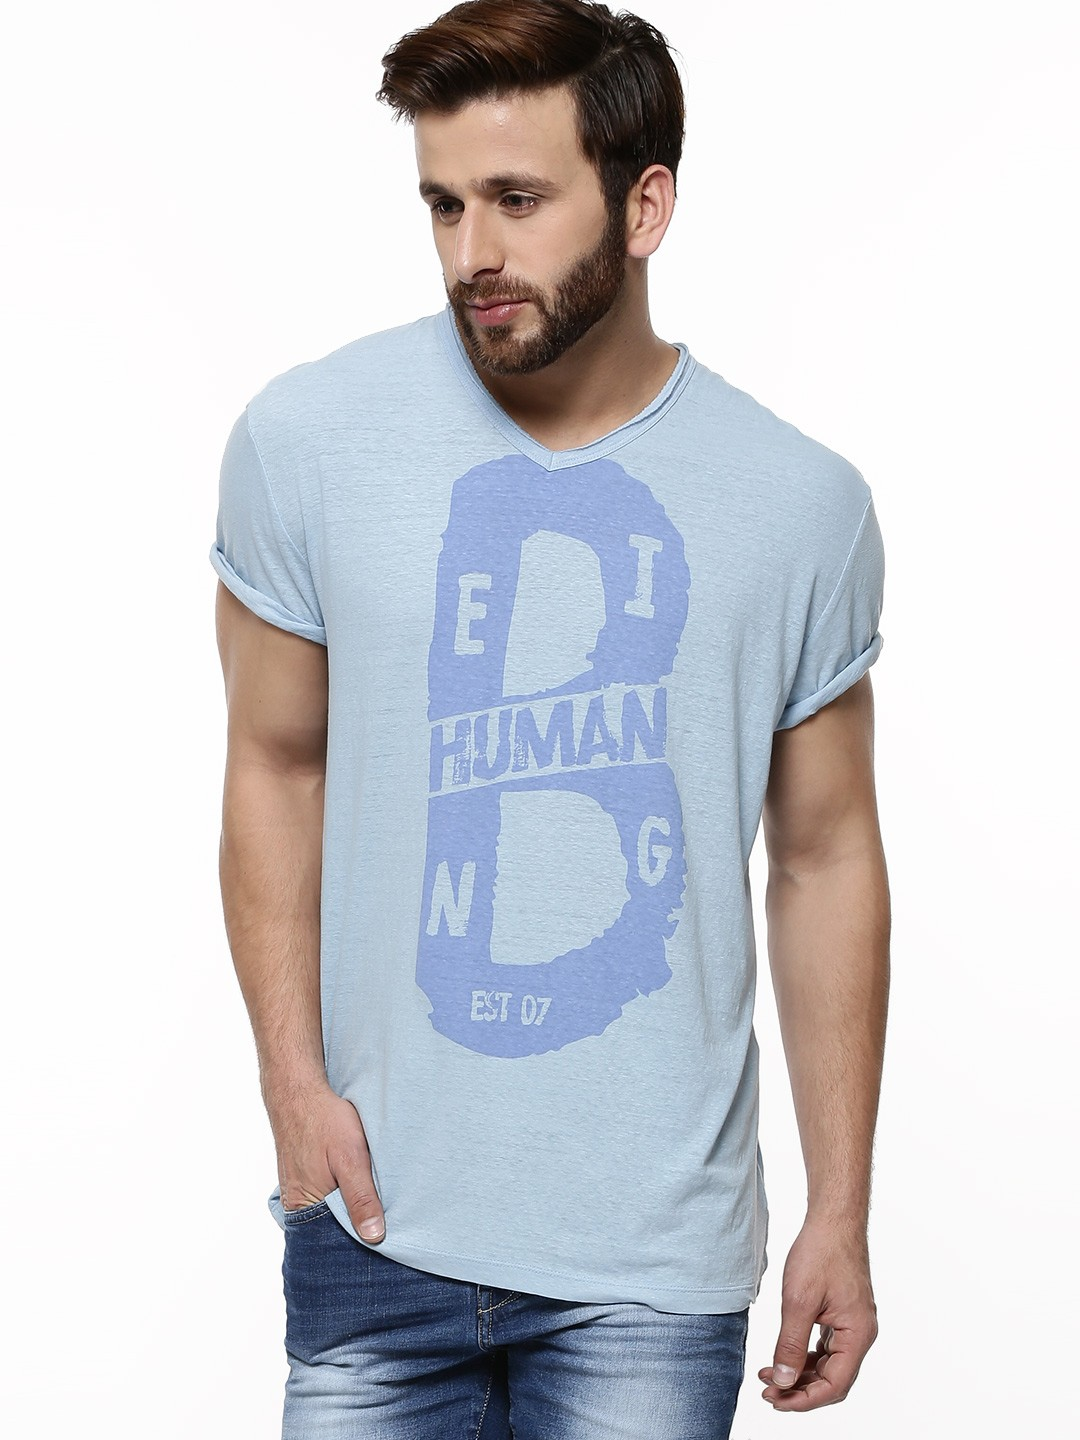 Buy being human graphic print t shirt for men men 39 s blue for Buy being human t shirts online